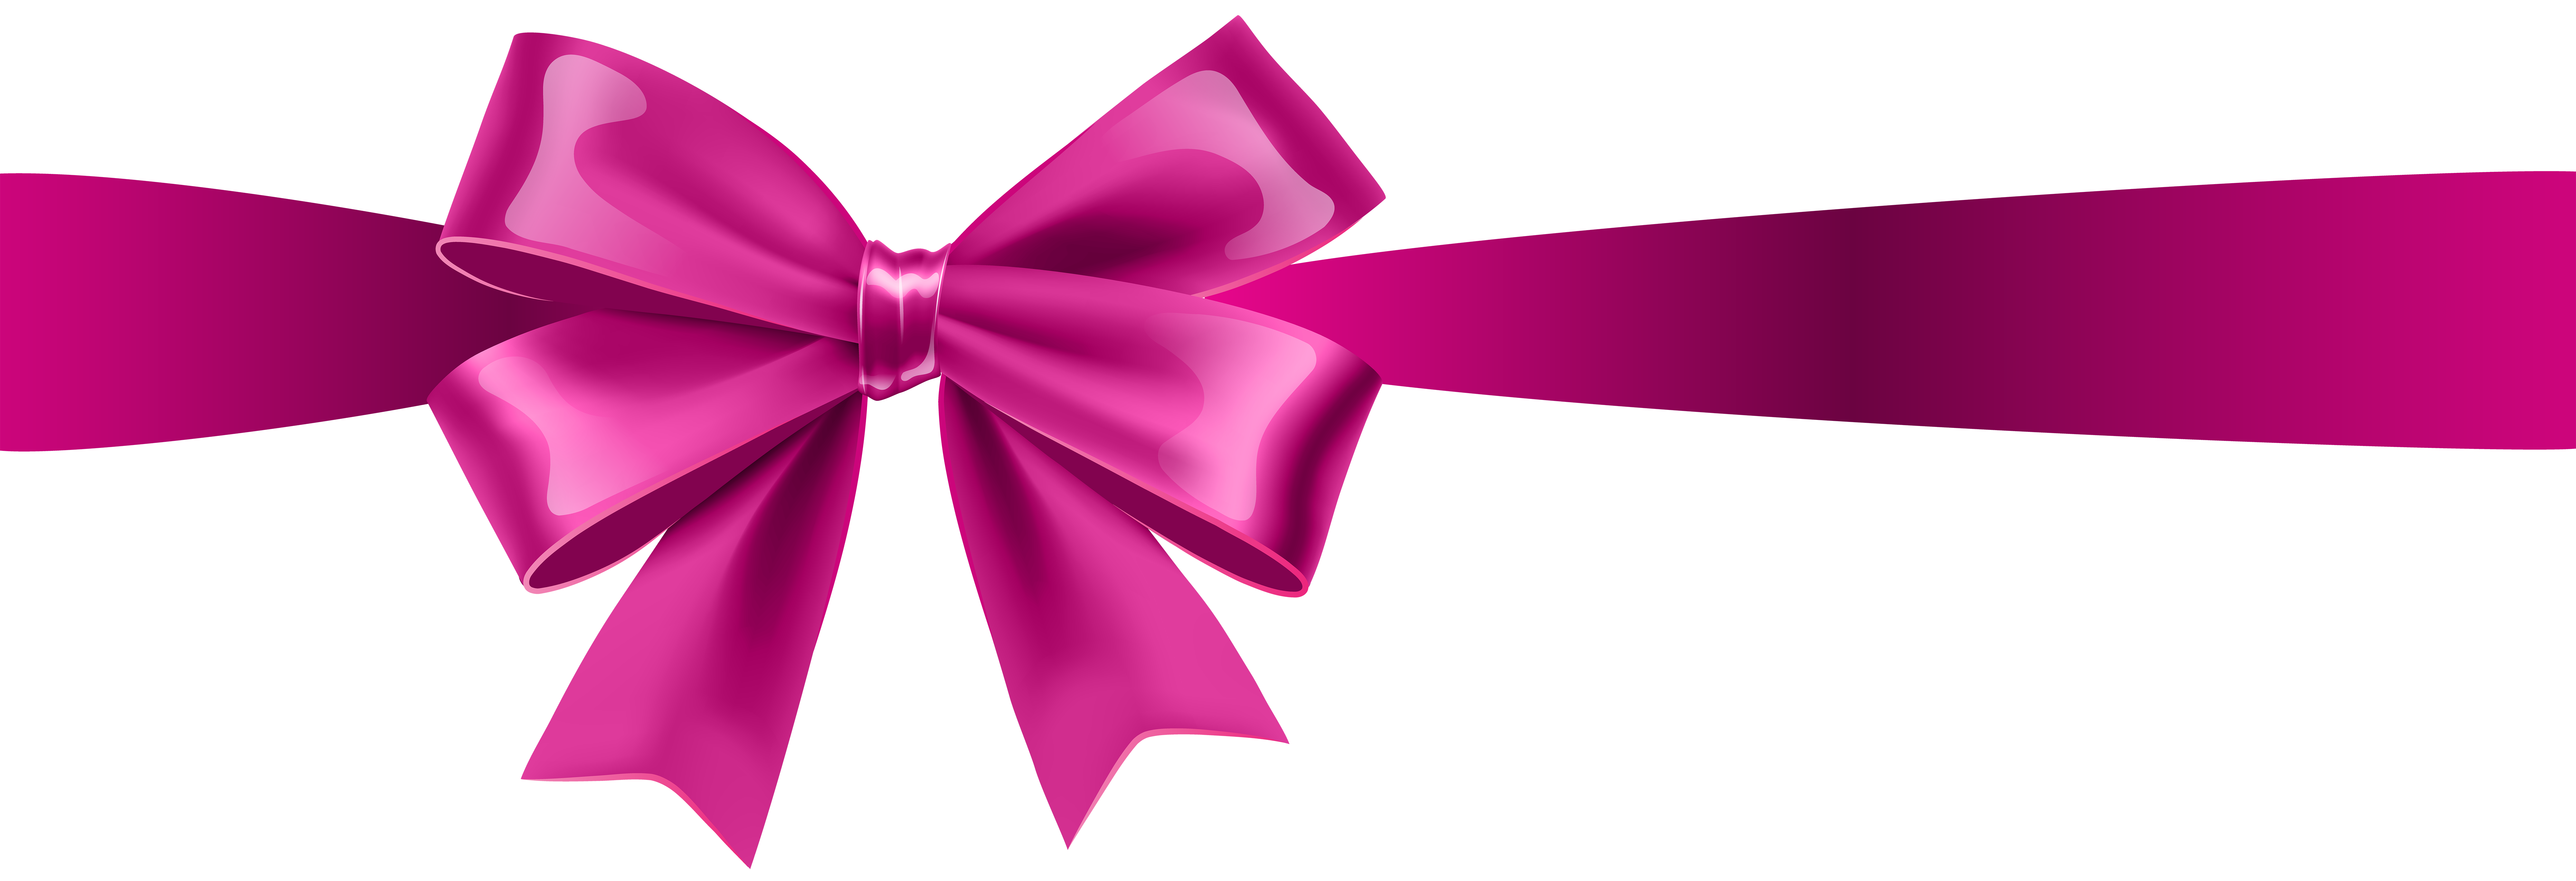 8000x2736 Pink Bow Clip Art Clipart Collection